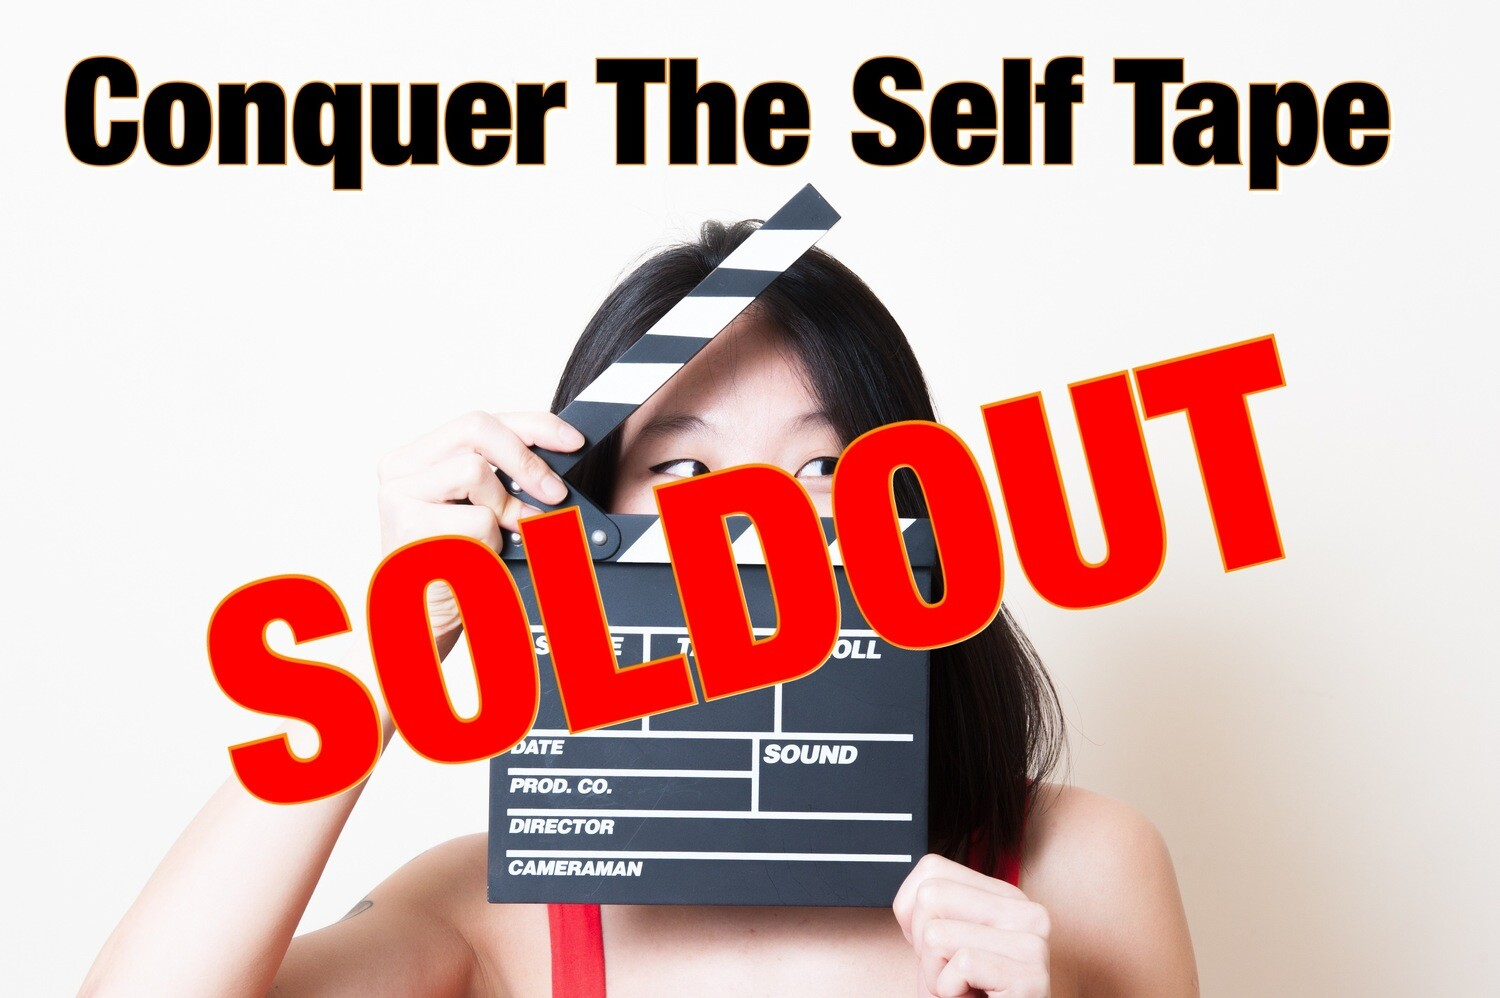 CONQUER THE SELF TAPE